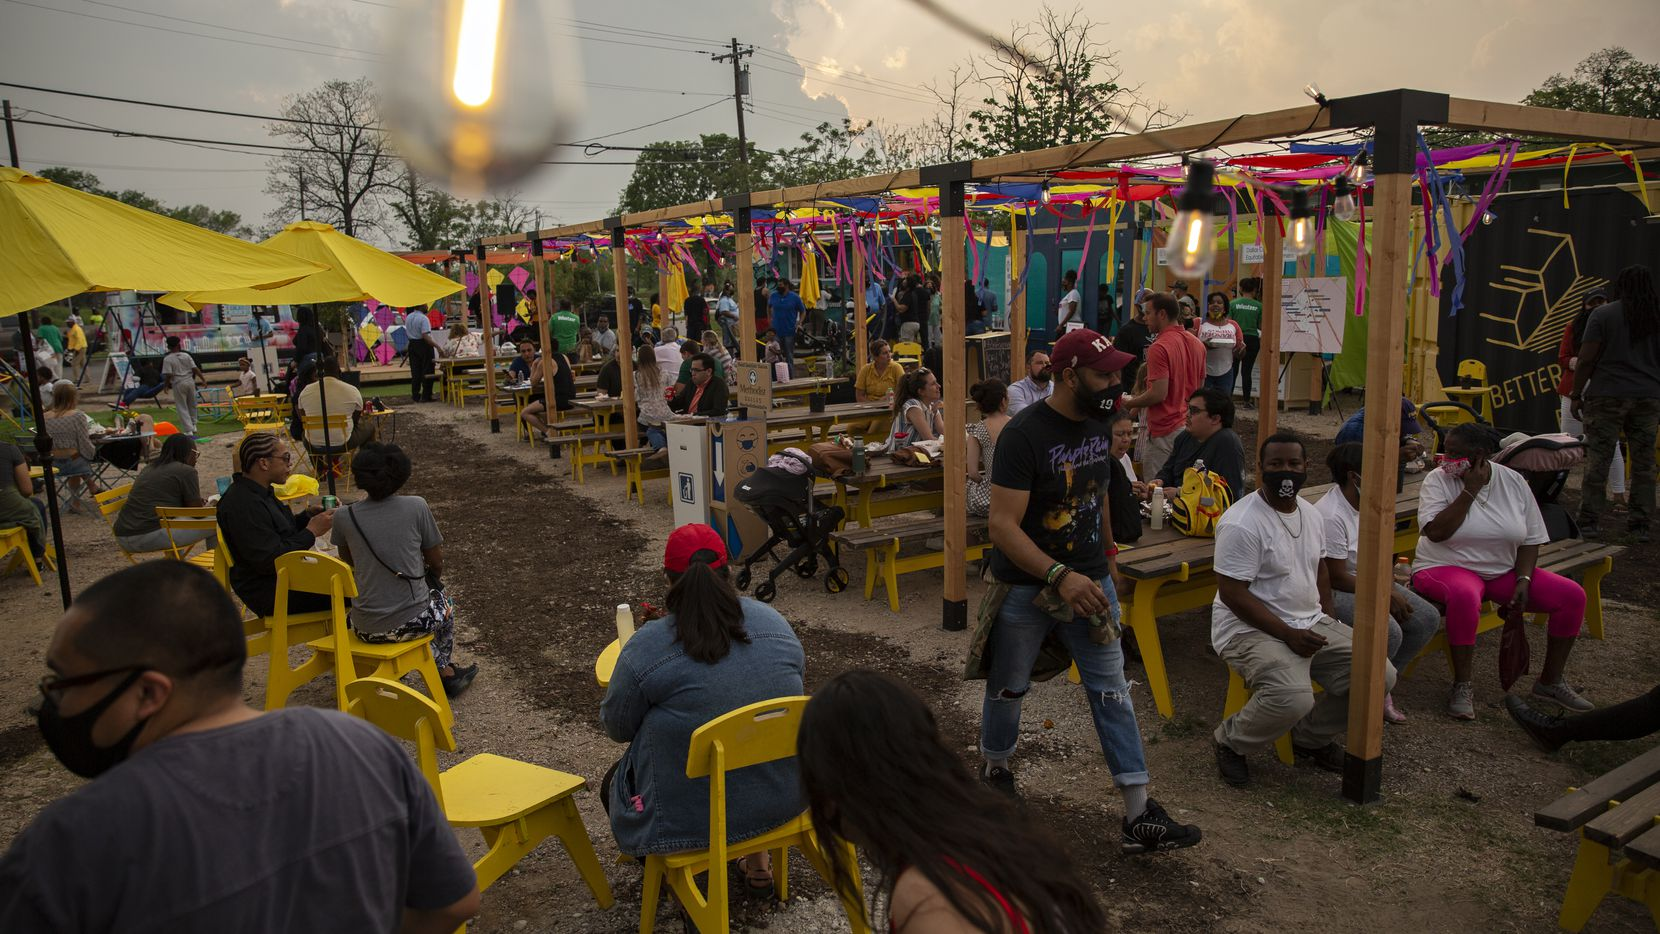 People enjoy the variety of food, live music, community gardens, and play area for the kids at the MLK Food Park in Dallas on April 9, 2021. The MLK Food Park will be tested for a month in South Dallas's Forest District.